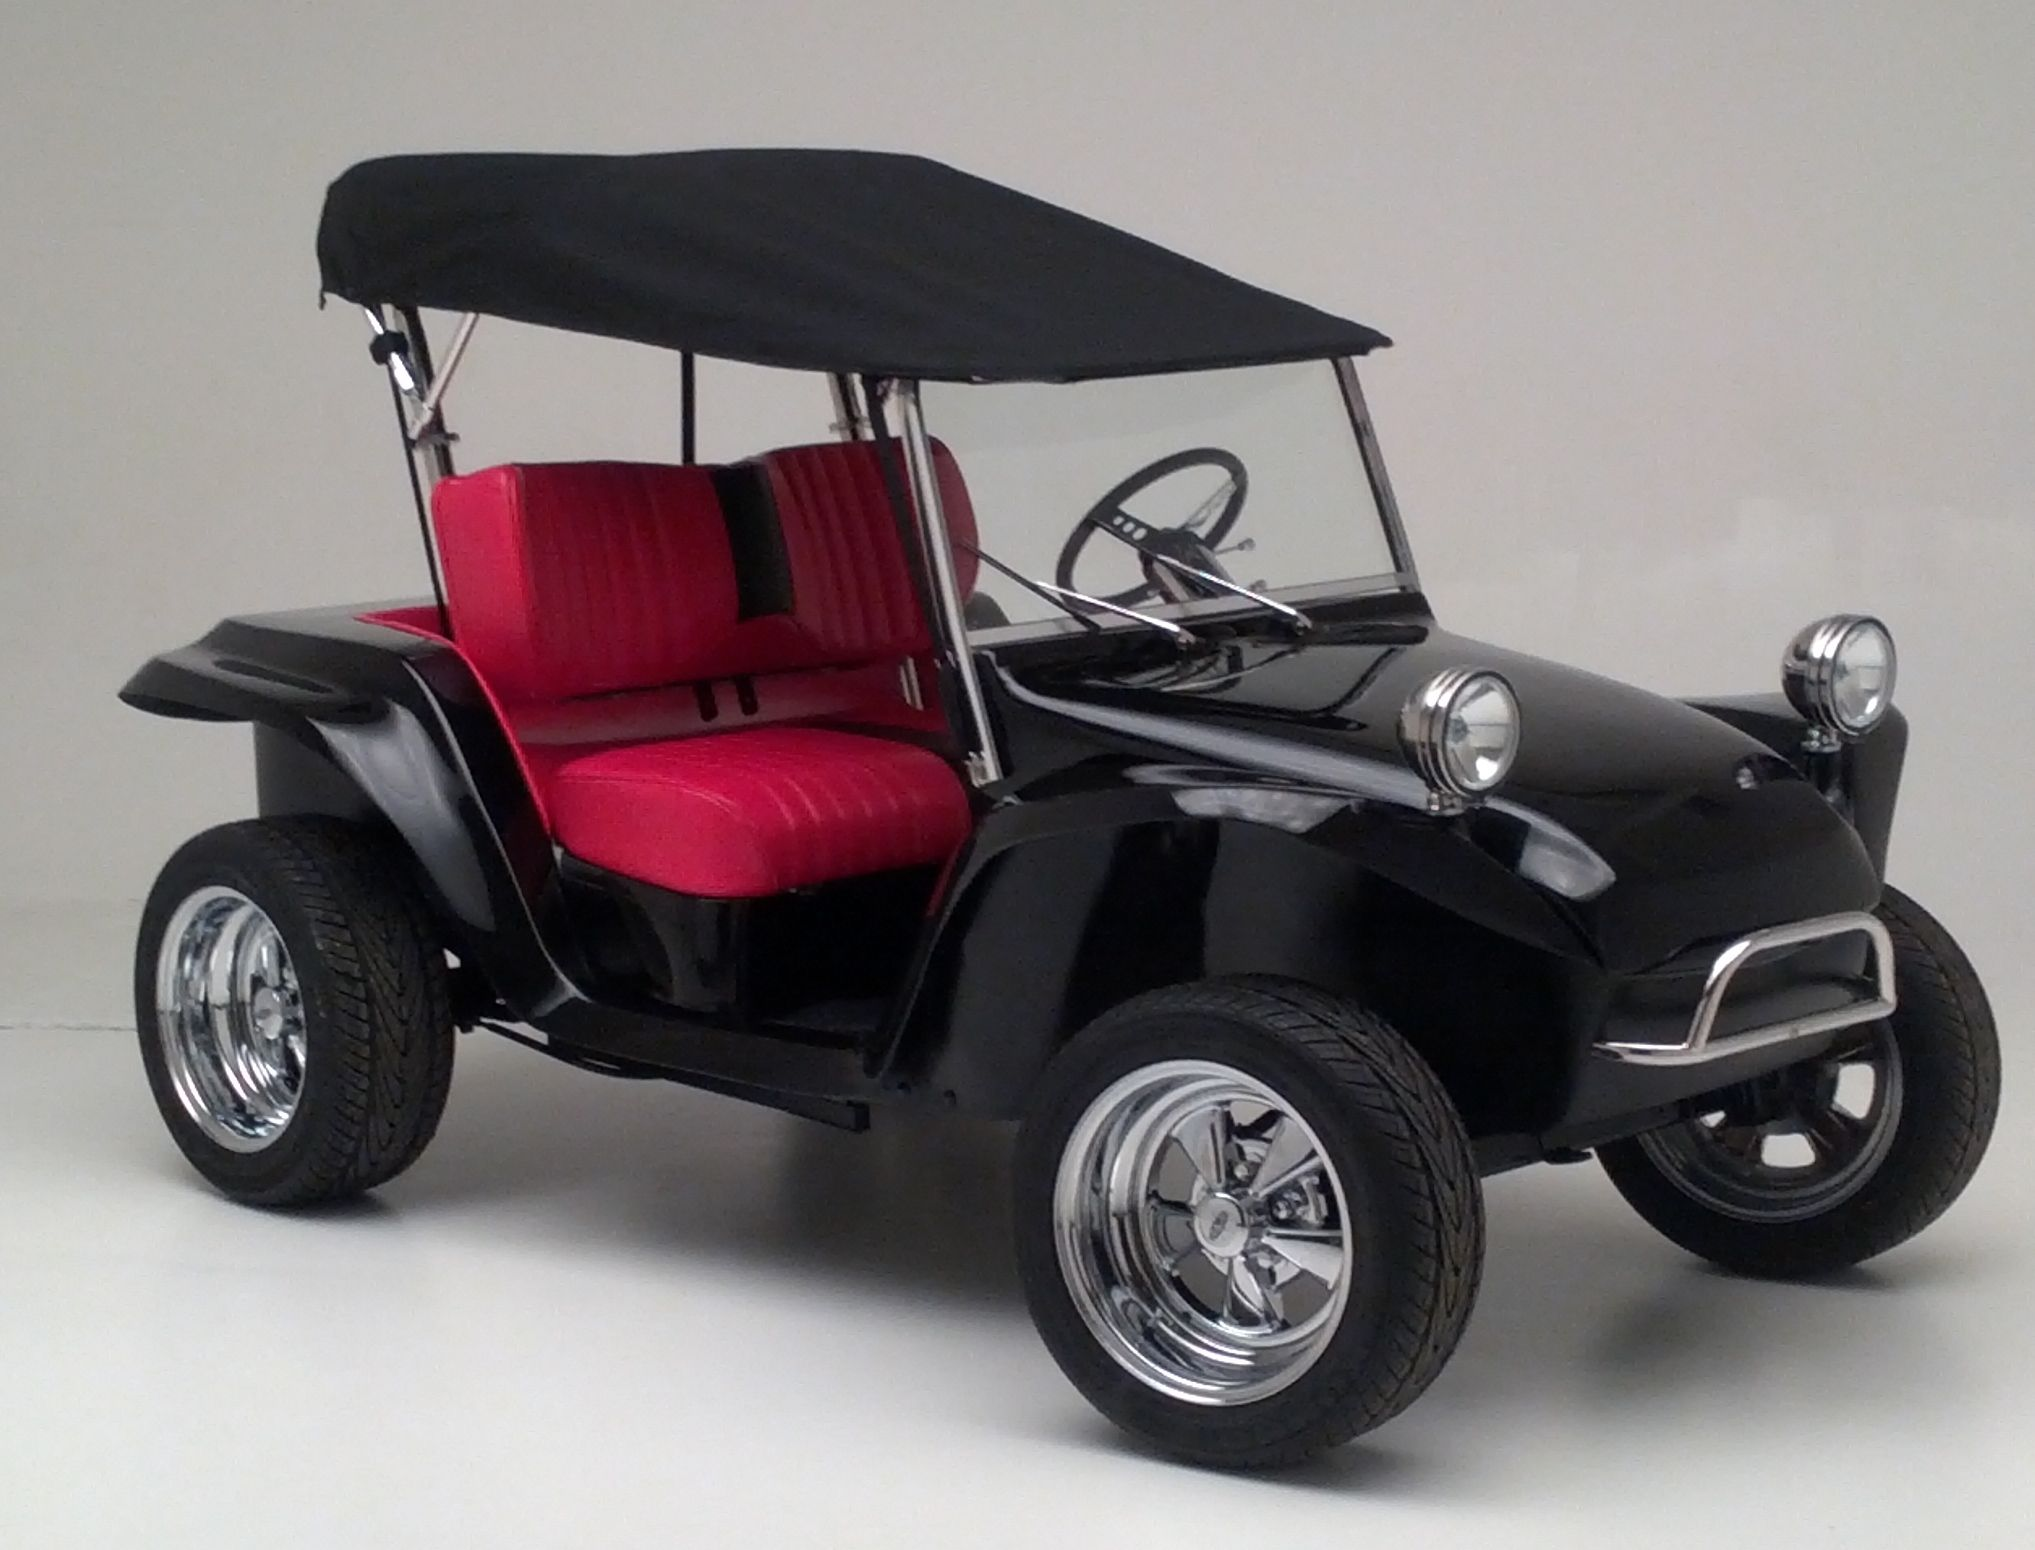 One of customers, Dune Buggy Golf Carts in Texas, builds these ... Golf Cart Beach Buggy on 2015 star ev golf cart, baja golf cart, maserati golf cart, dodge golf cart, jeep golf cart, cadillac golf cart, chevrolet golf cart, car golf cart, black golf cart, 6 seater golf cart, ferrari golf cart, trailer golf cart, motorcycle golf cart, bmw golf cart, atv golf cart, balloon golf cart, woody golf cart, mercedes golf cart, land rover golf cart, hummer golf cart,